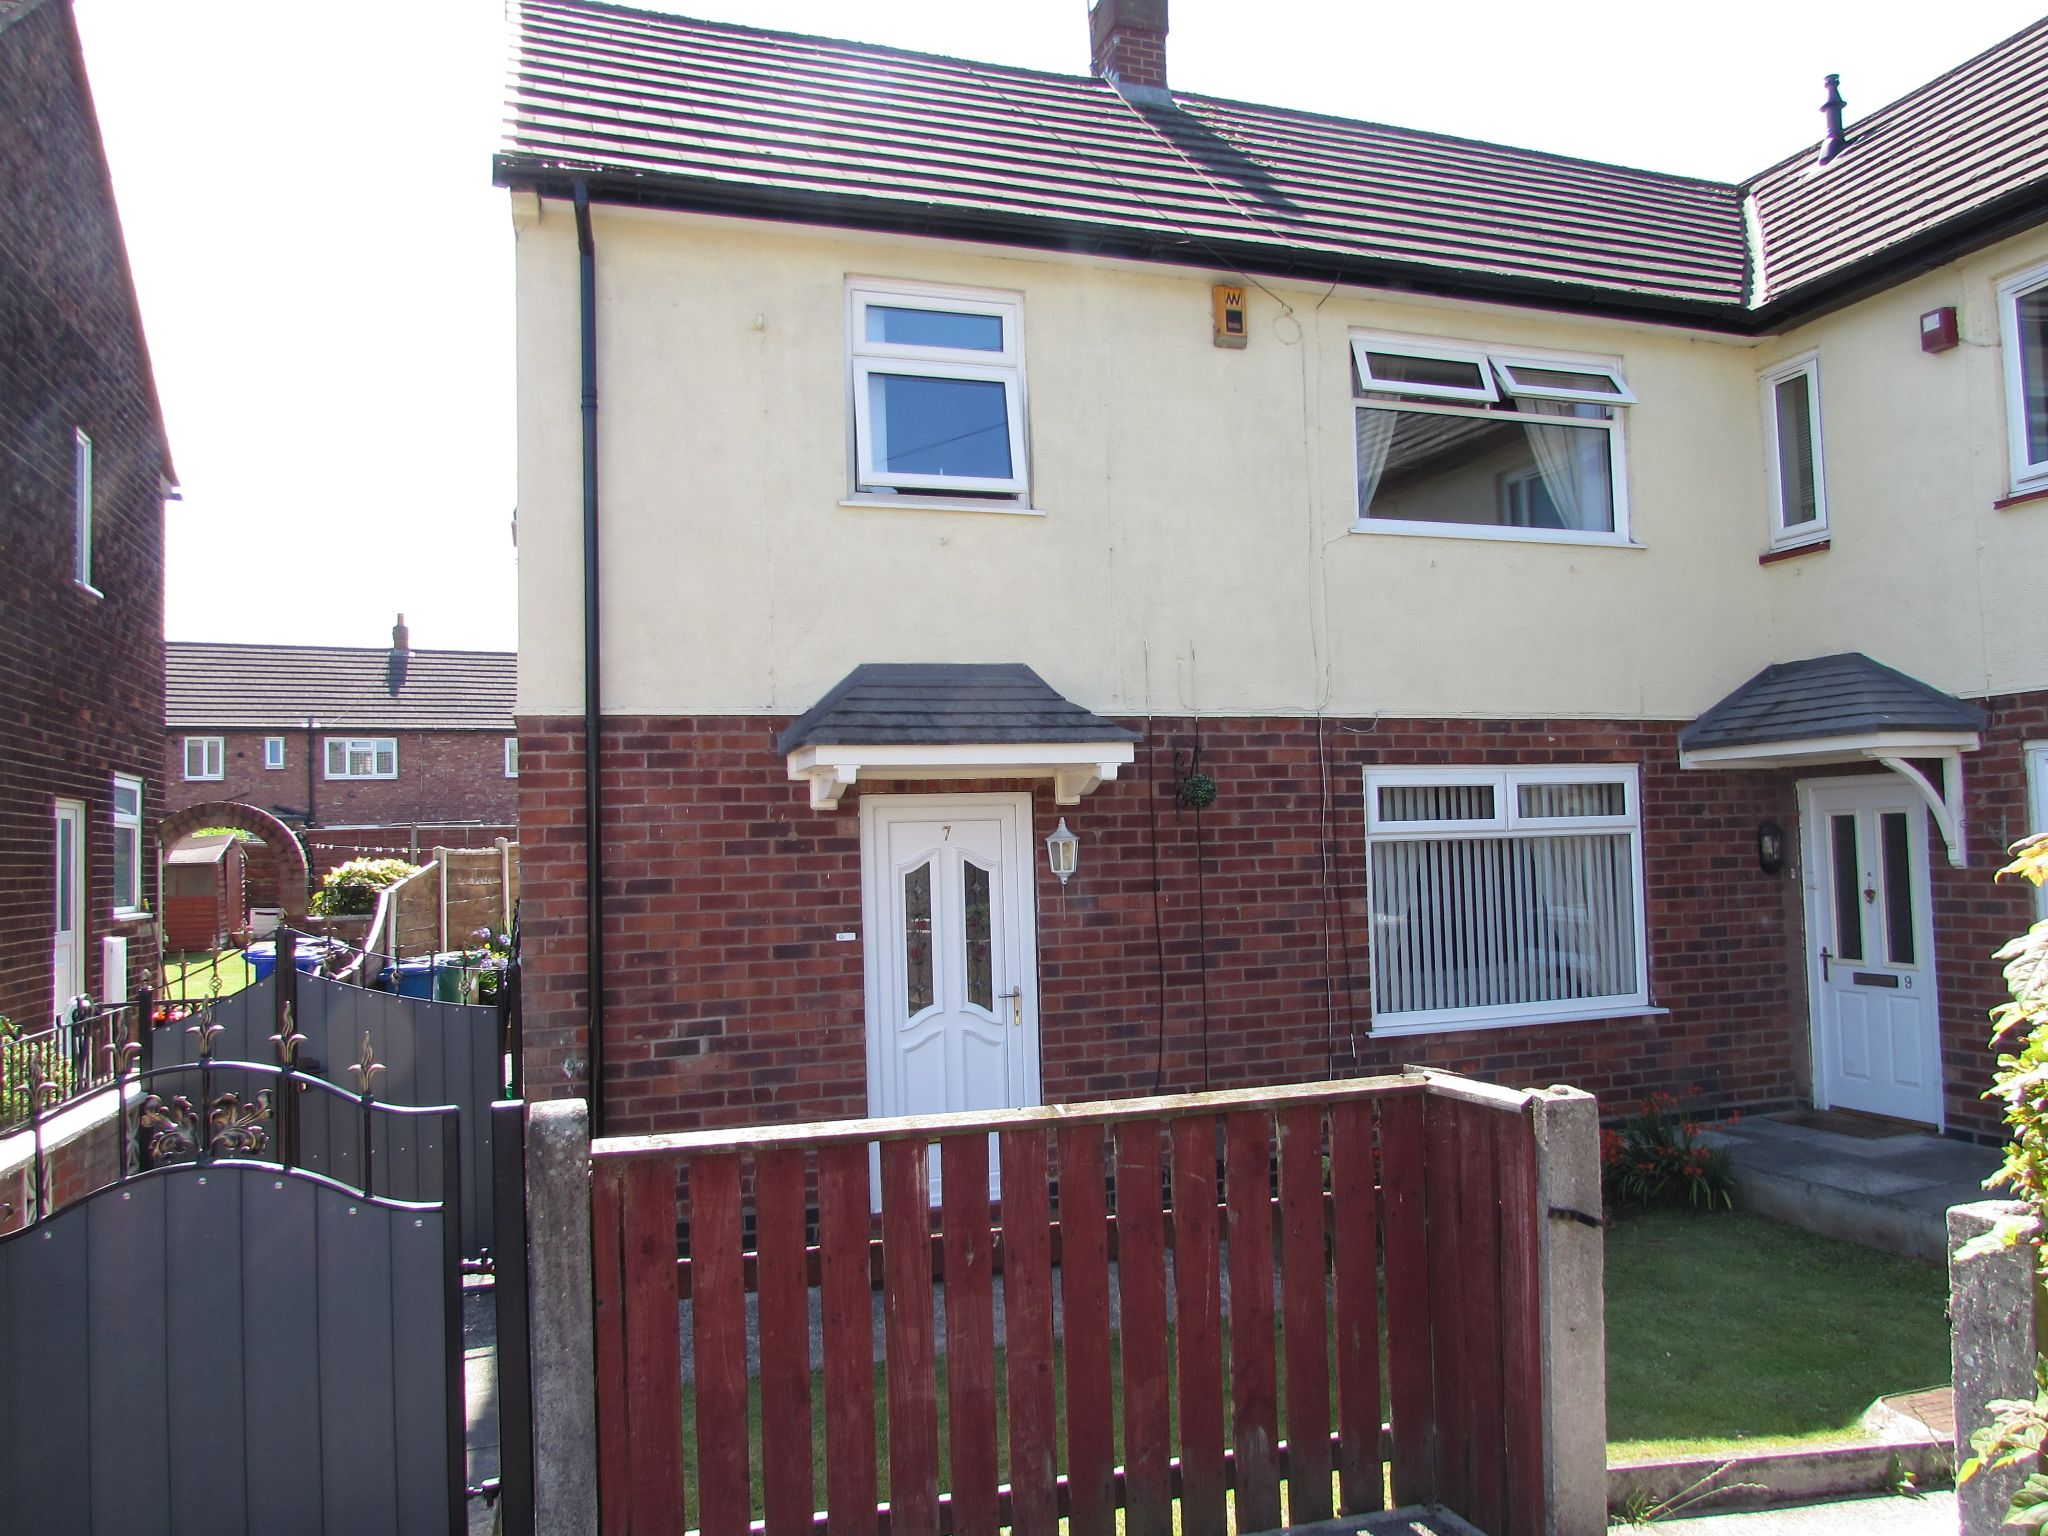 3 Bedroom End Terraced House For Sale - Photograph 26